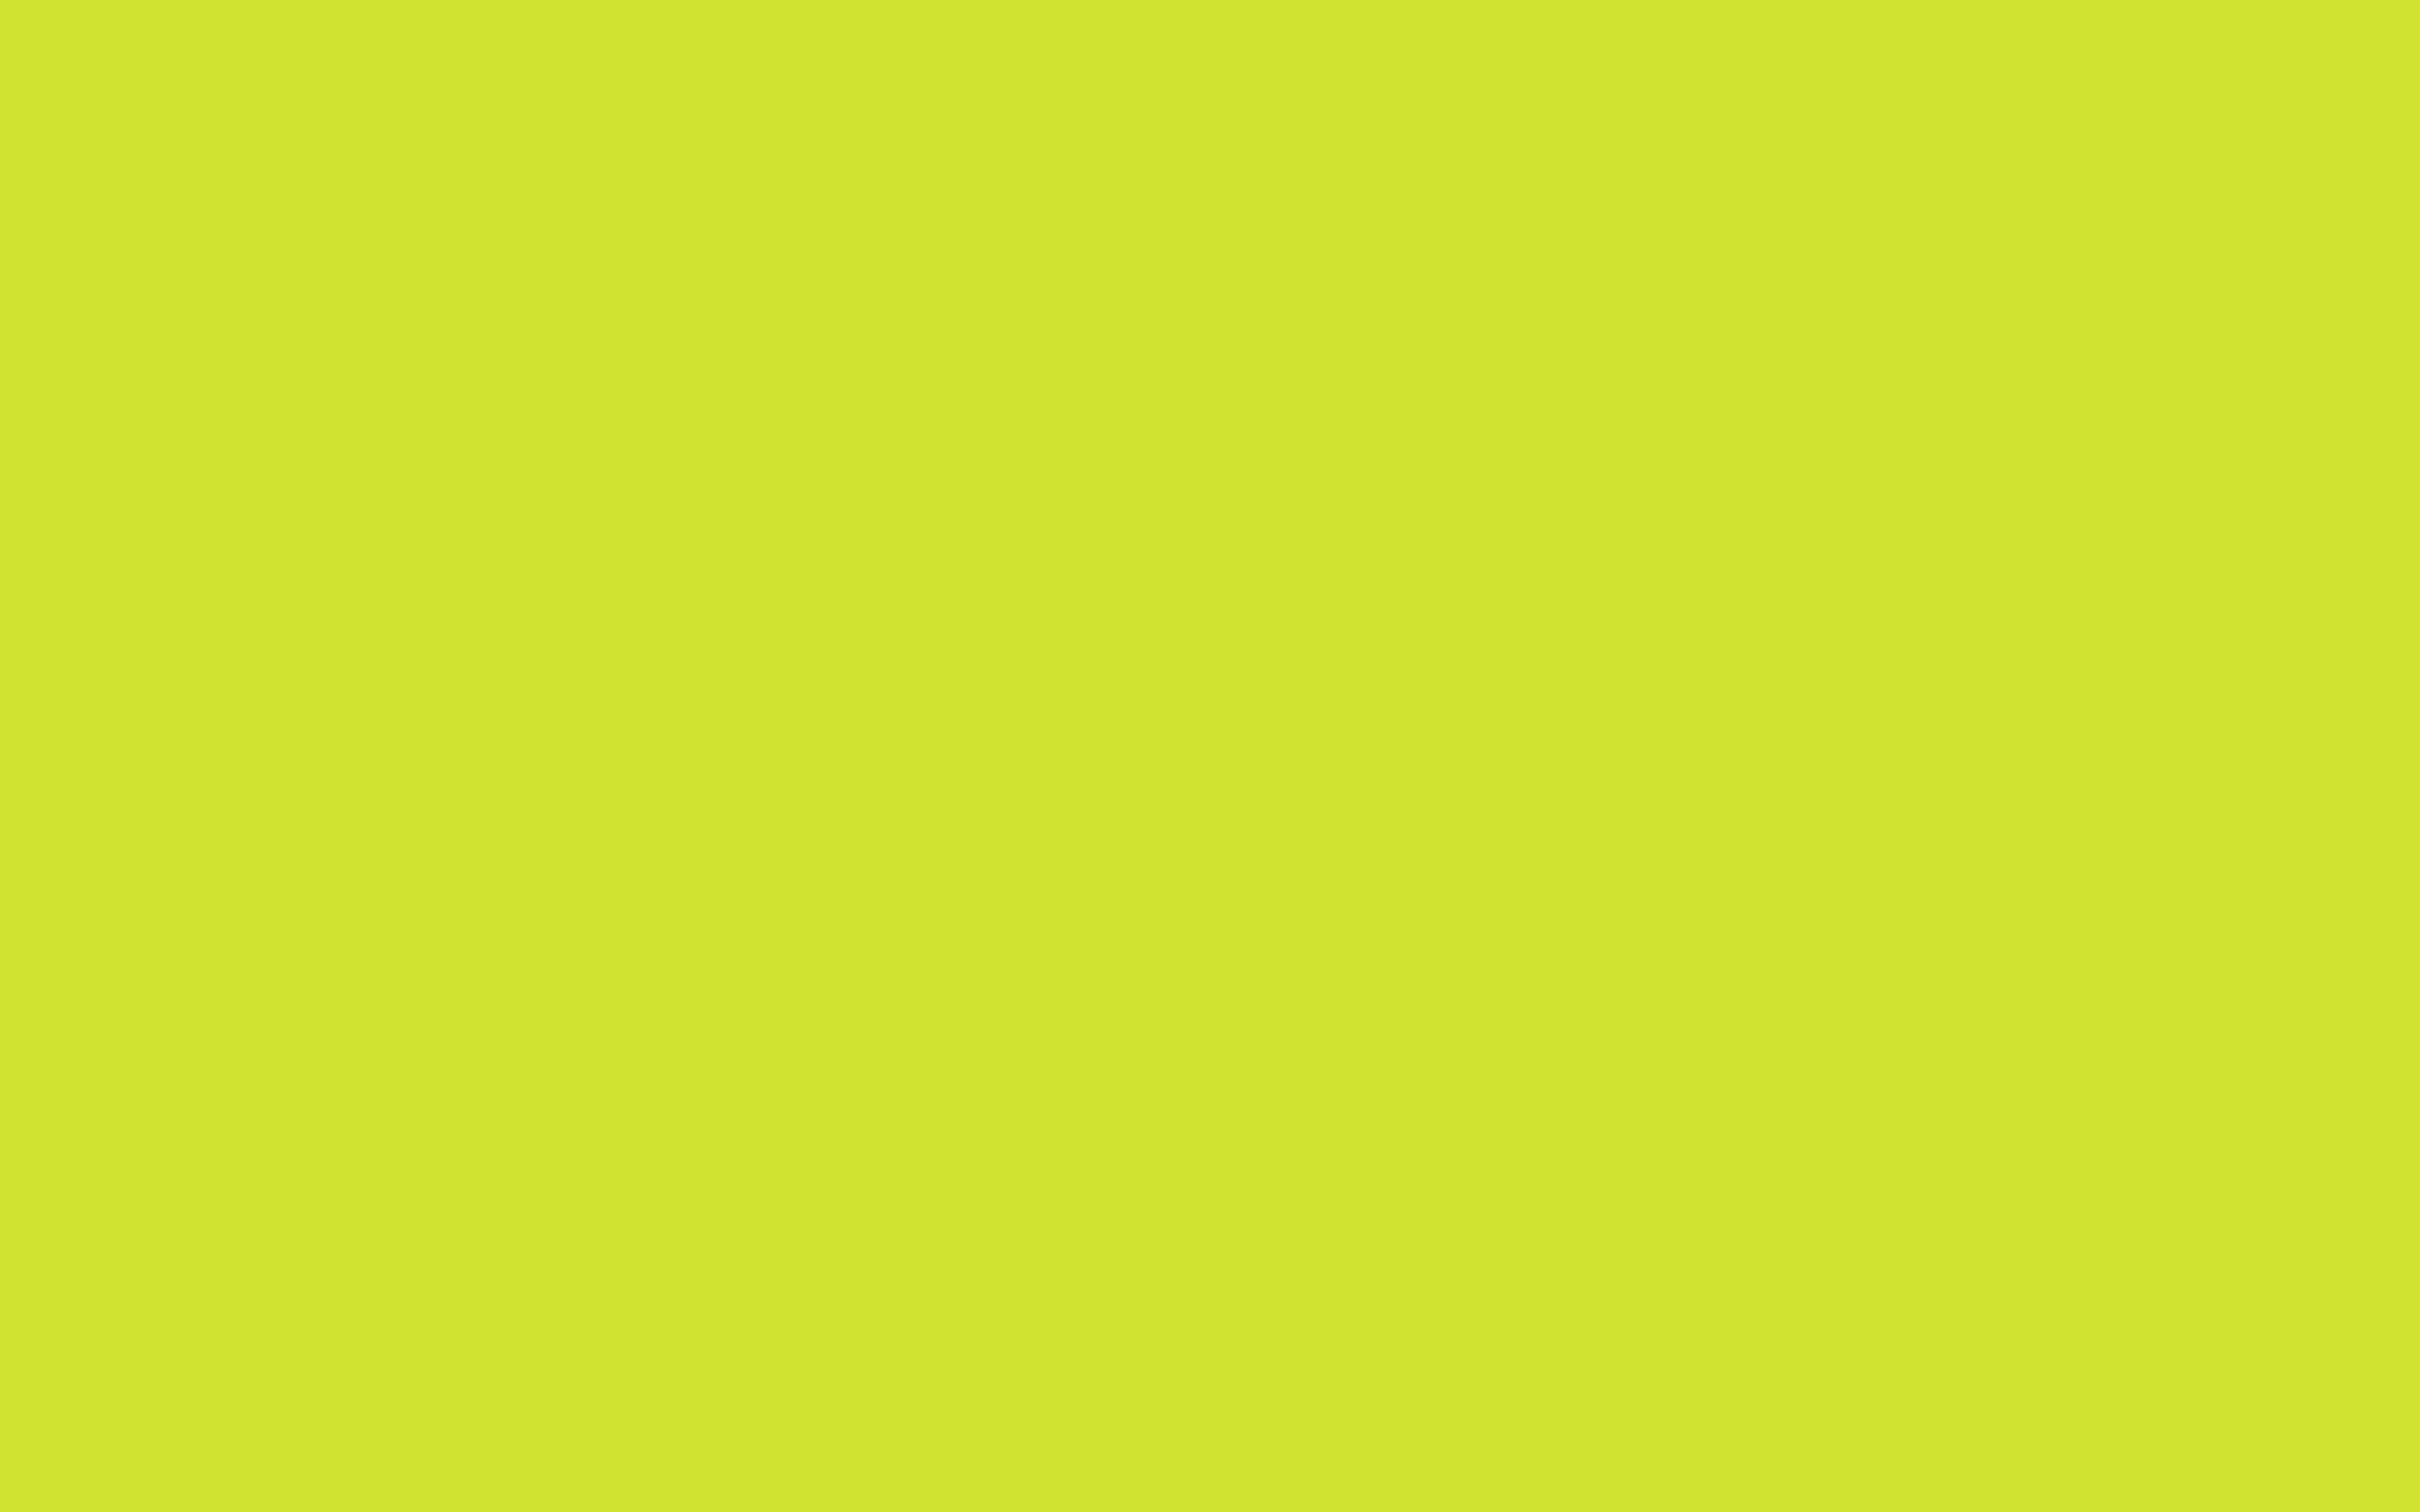 2880x1800 Pear Solid Color Background